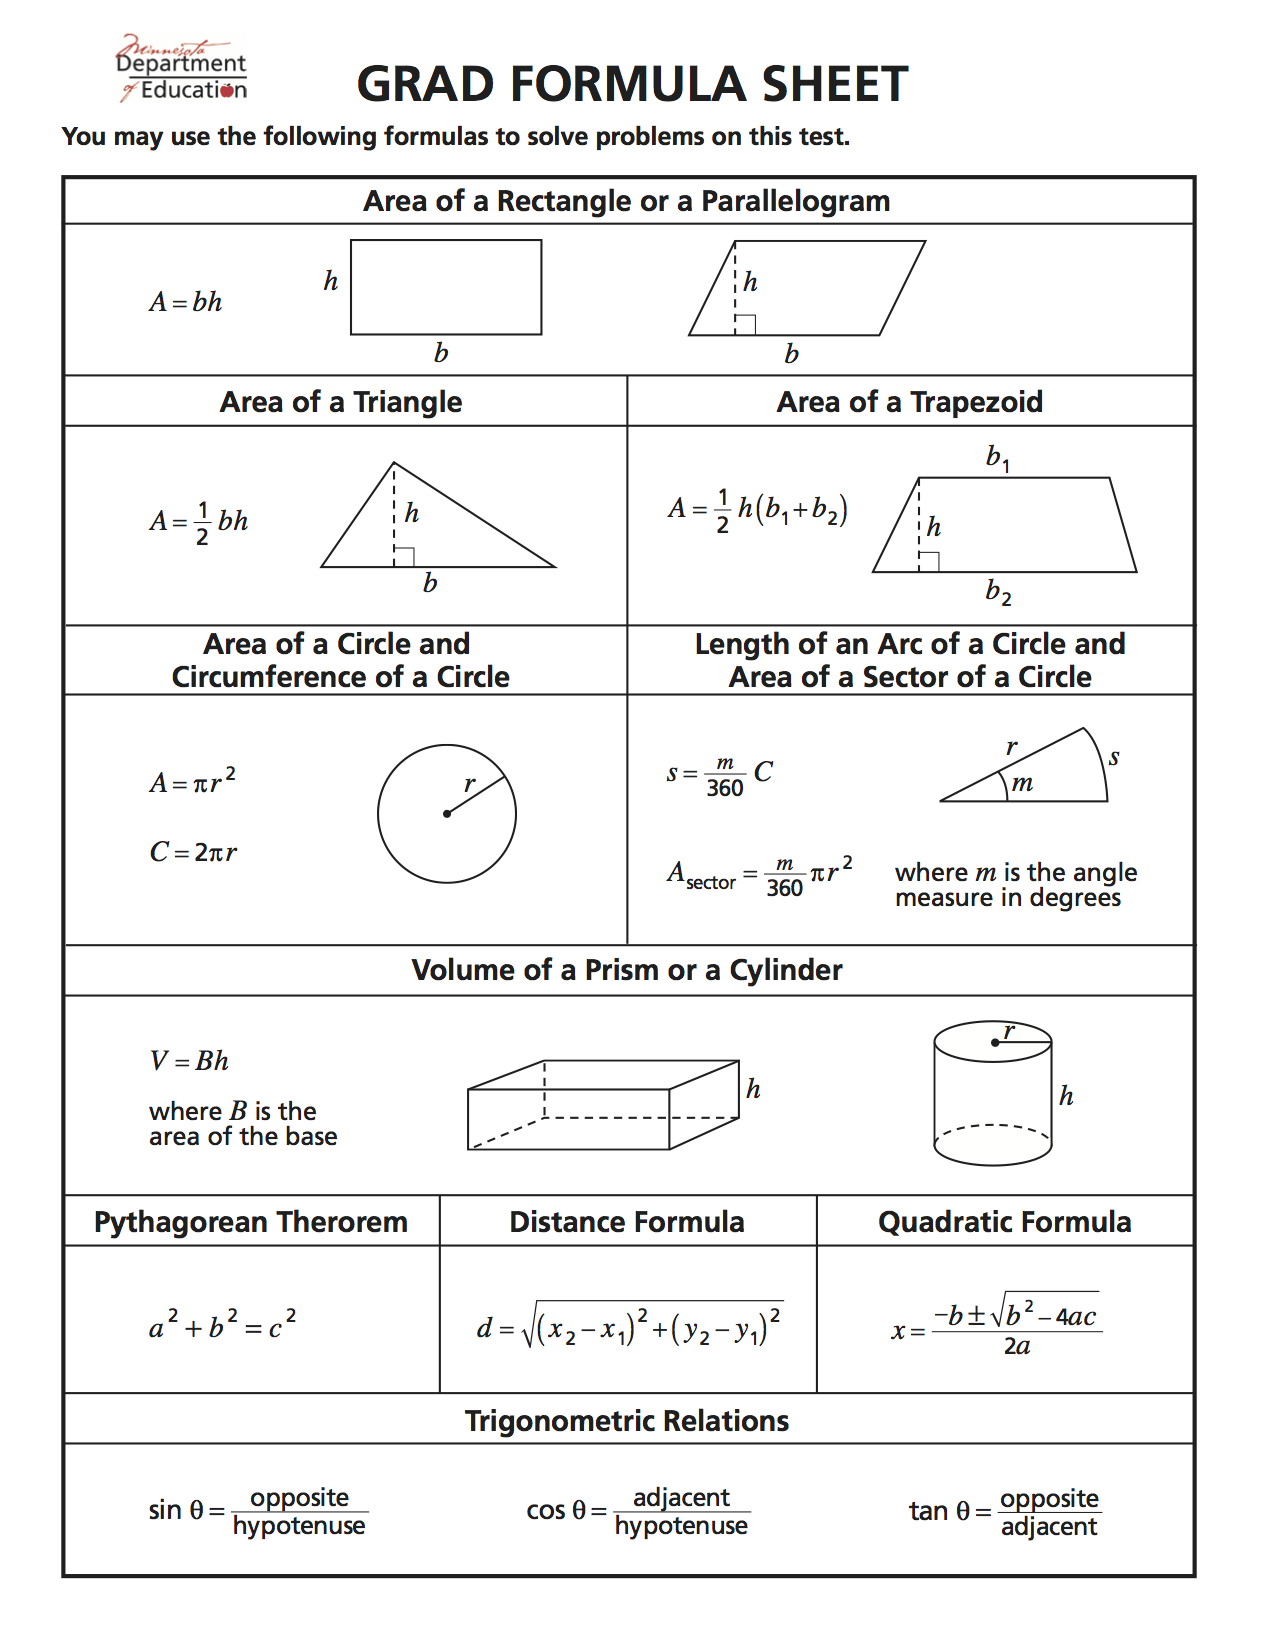 Mathematics formula sheet keni ganamas co